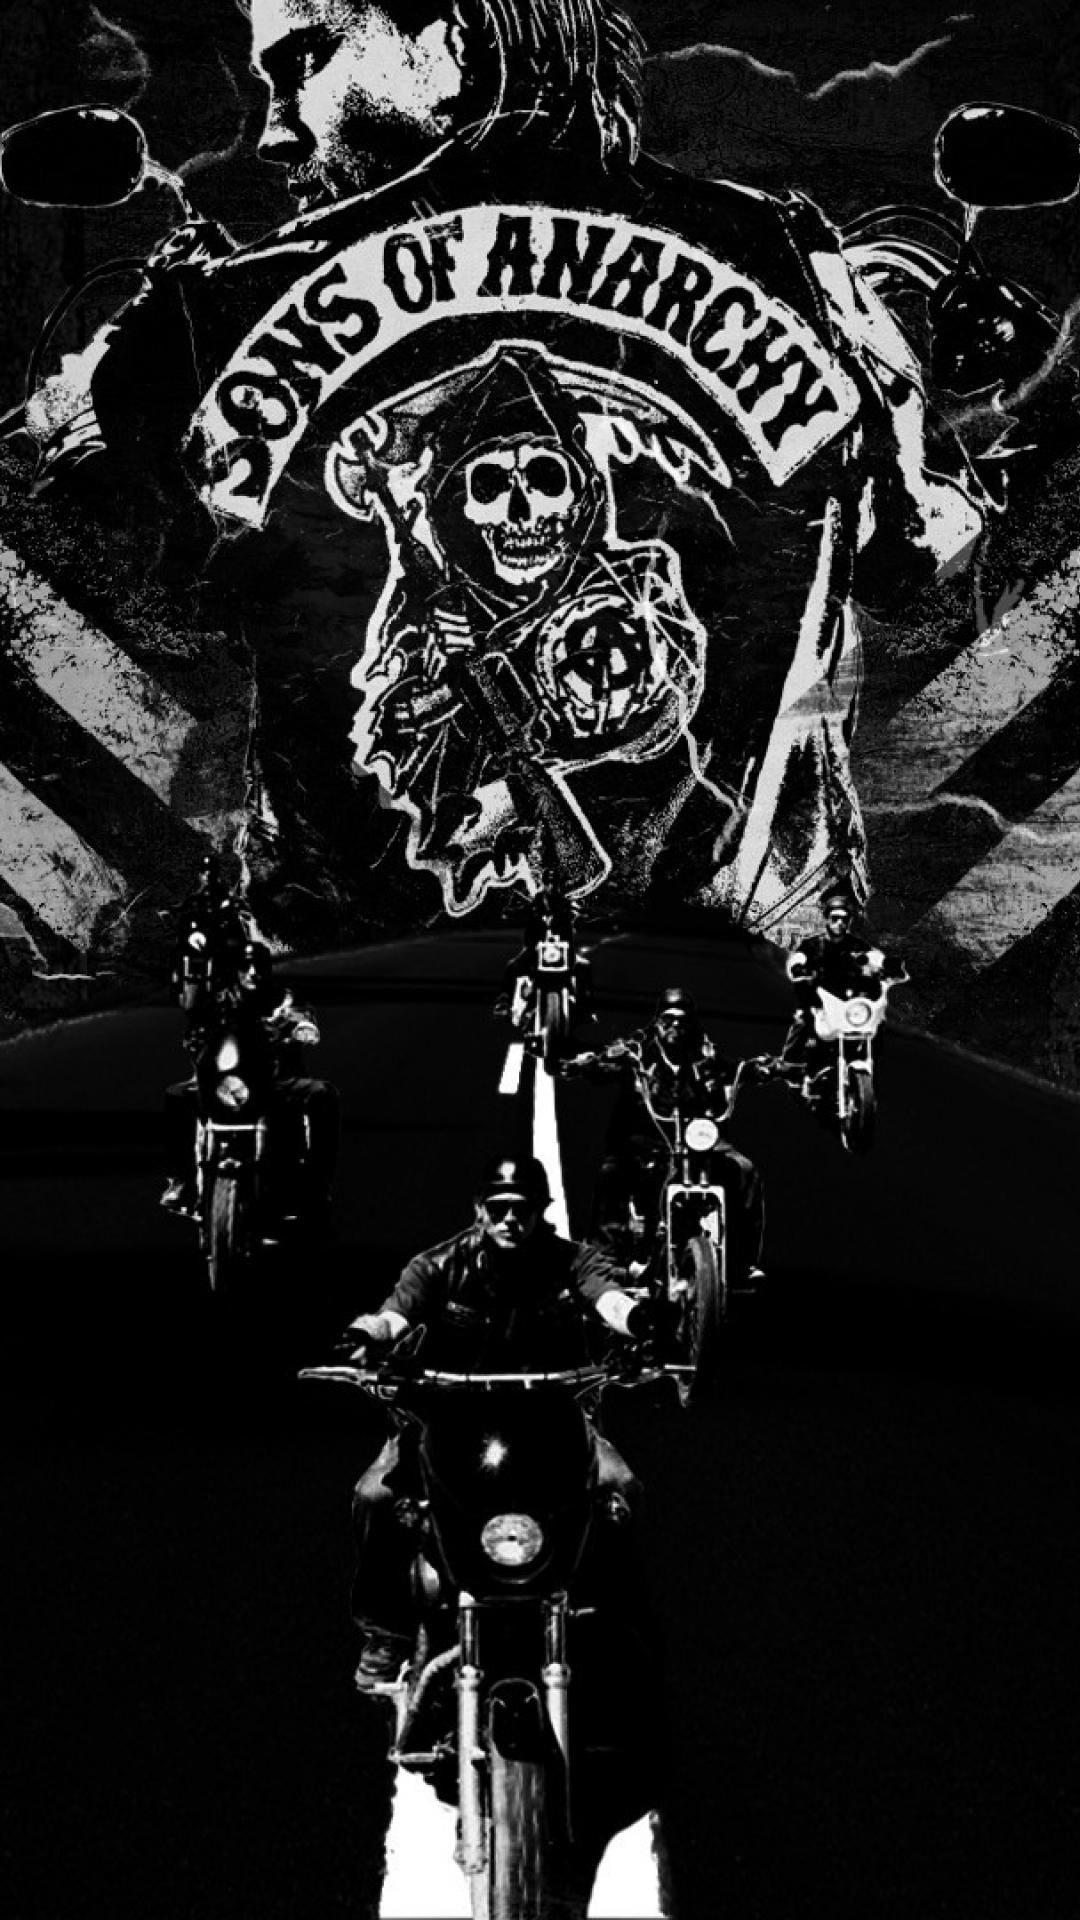 Sons Of Anarchy Wallpaper 68 Image Collections Of Wallpapers